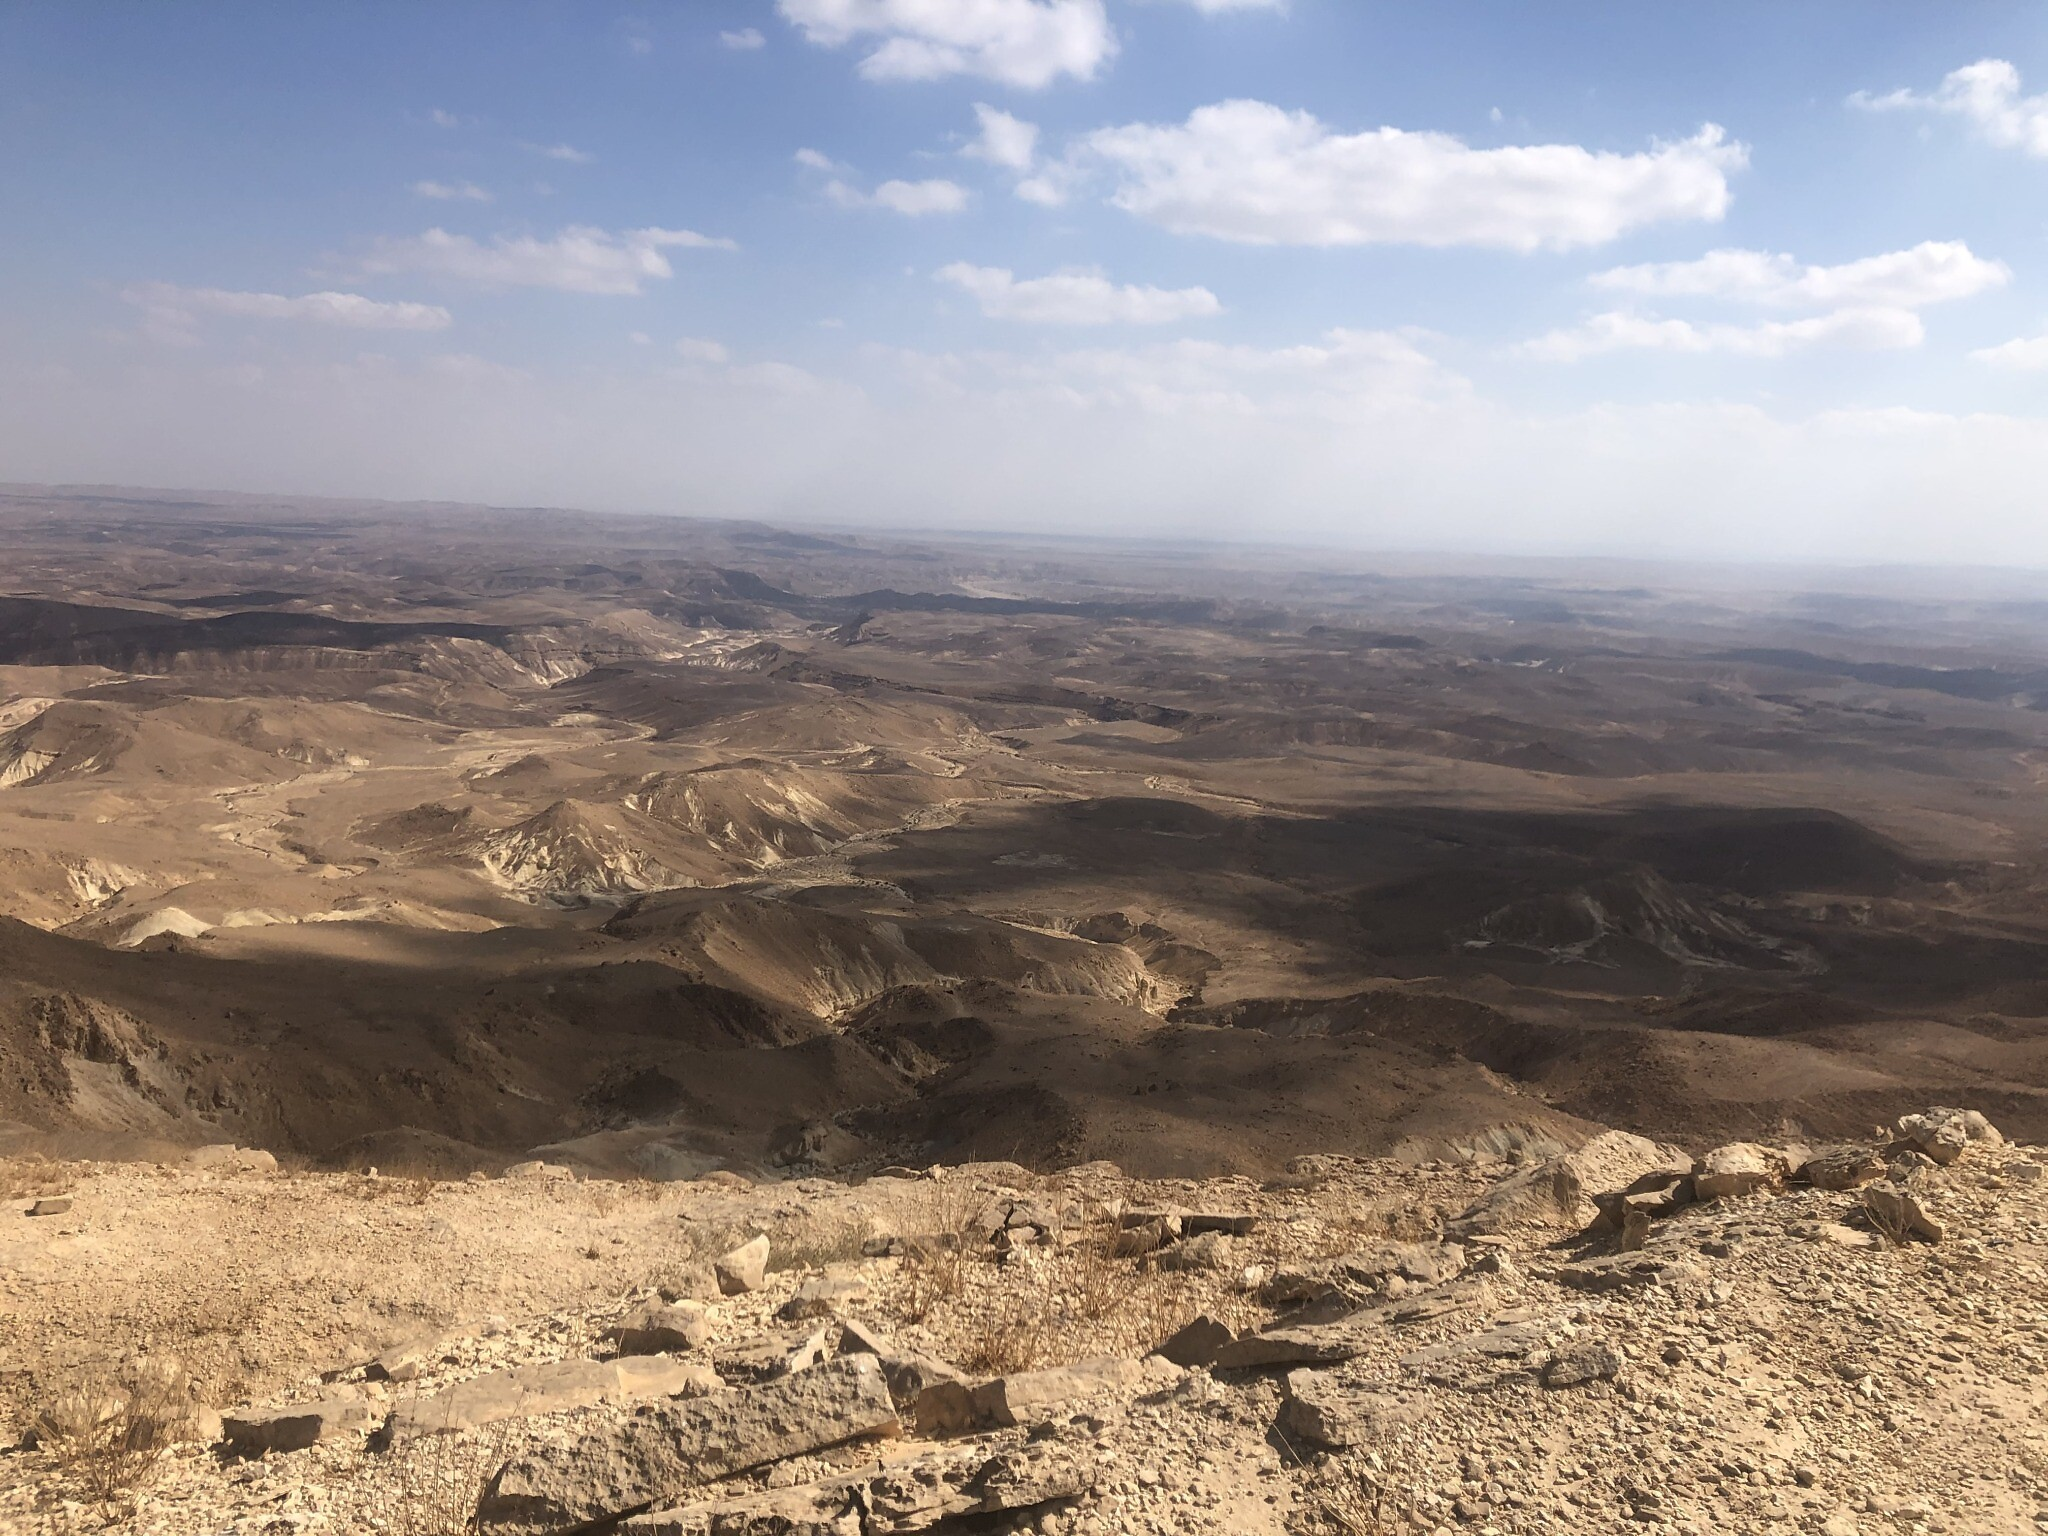 The expanse of desert as seen from Mount Karkom. (Sue Surkes/TimesofIsrael)